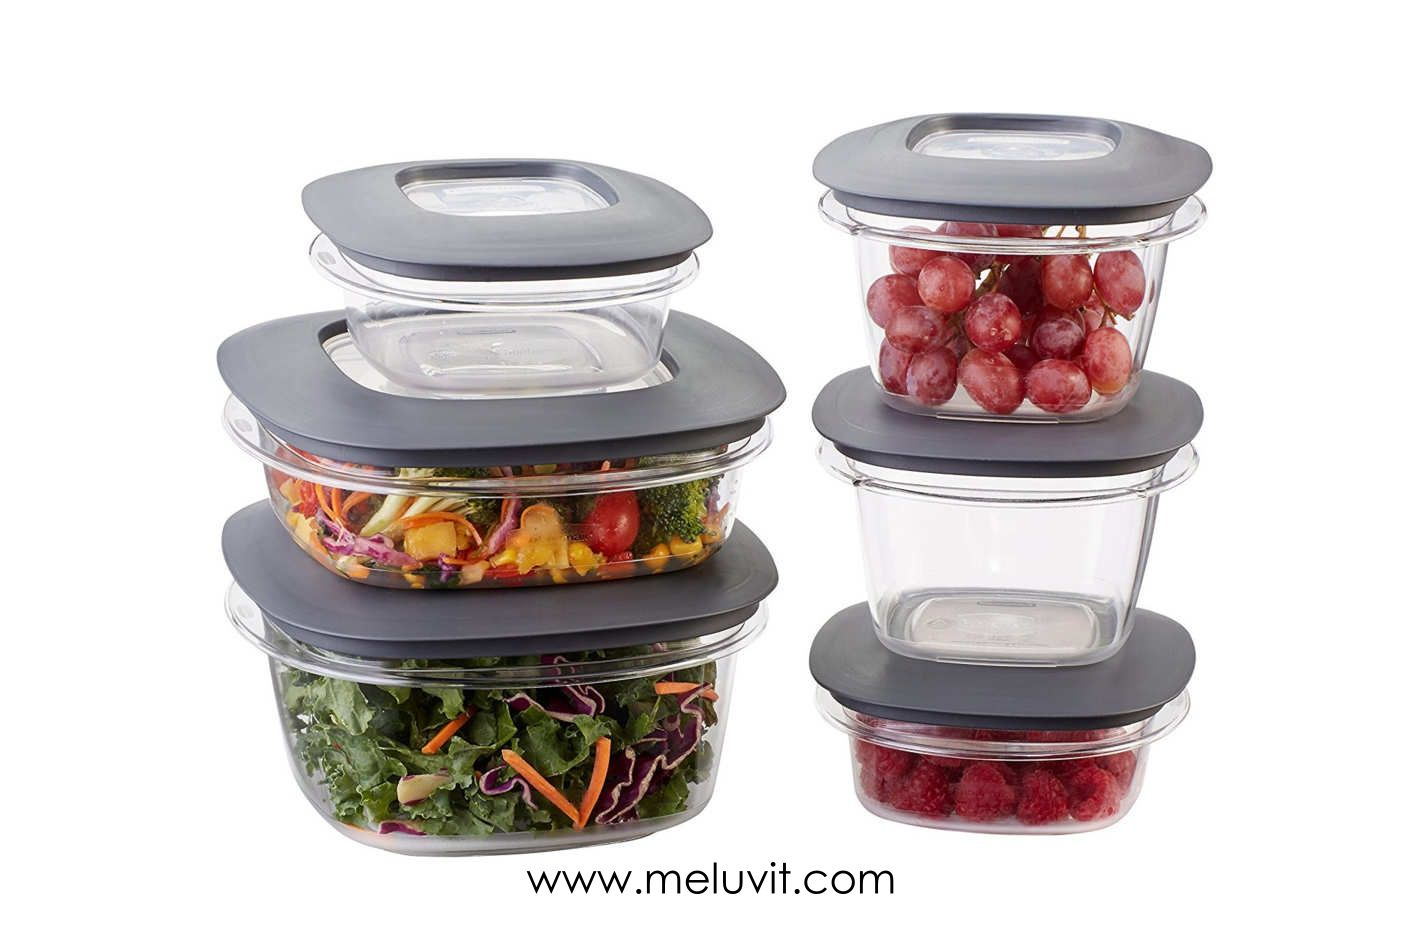 Rubbermaid Heavy Duty Food Storage Rubbermaid Food Storage Food Storage Container Set Food Storage Containers